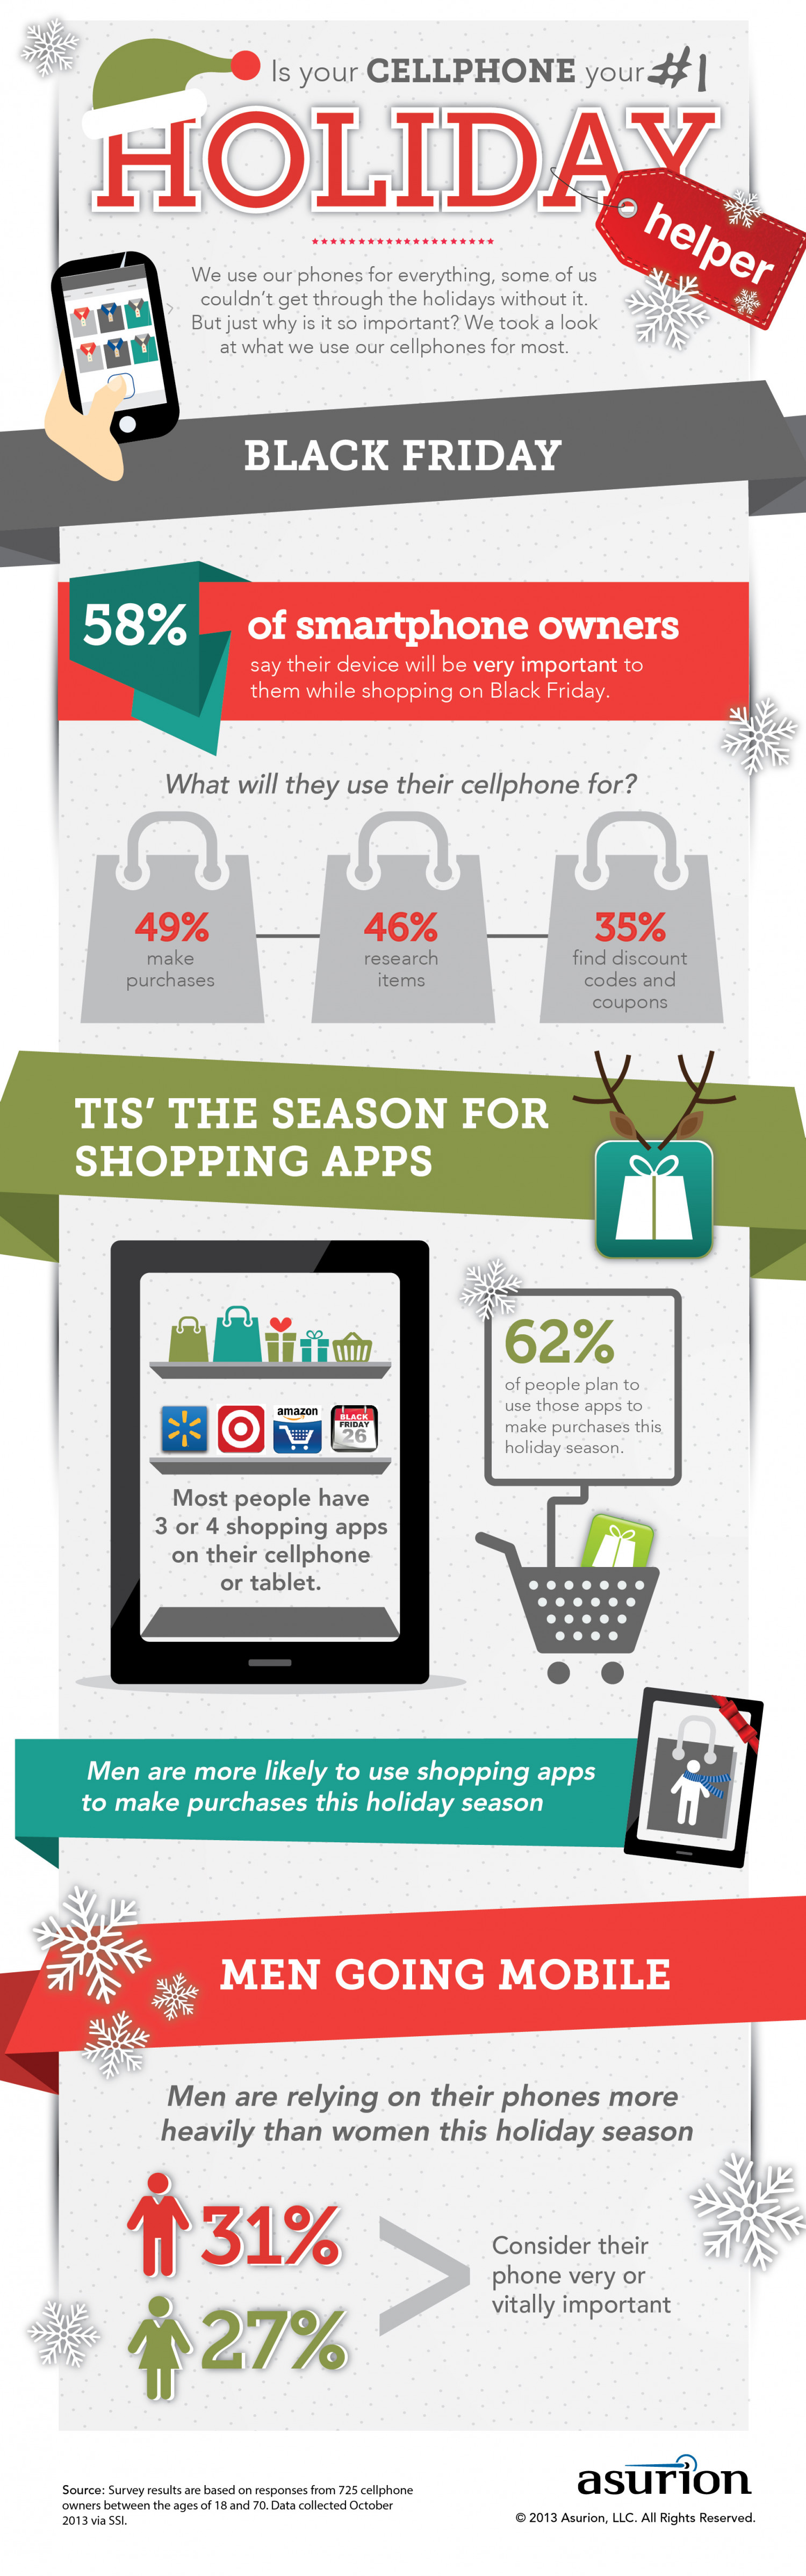 Is Your Cellphone Your #1 Holiday Helper? Infographic